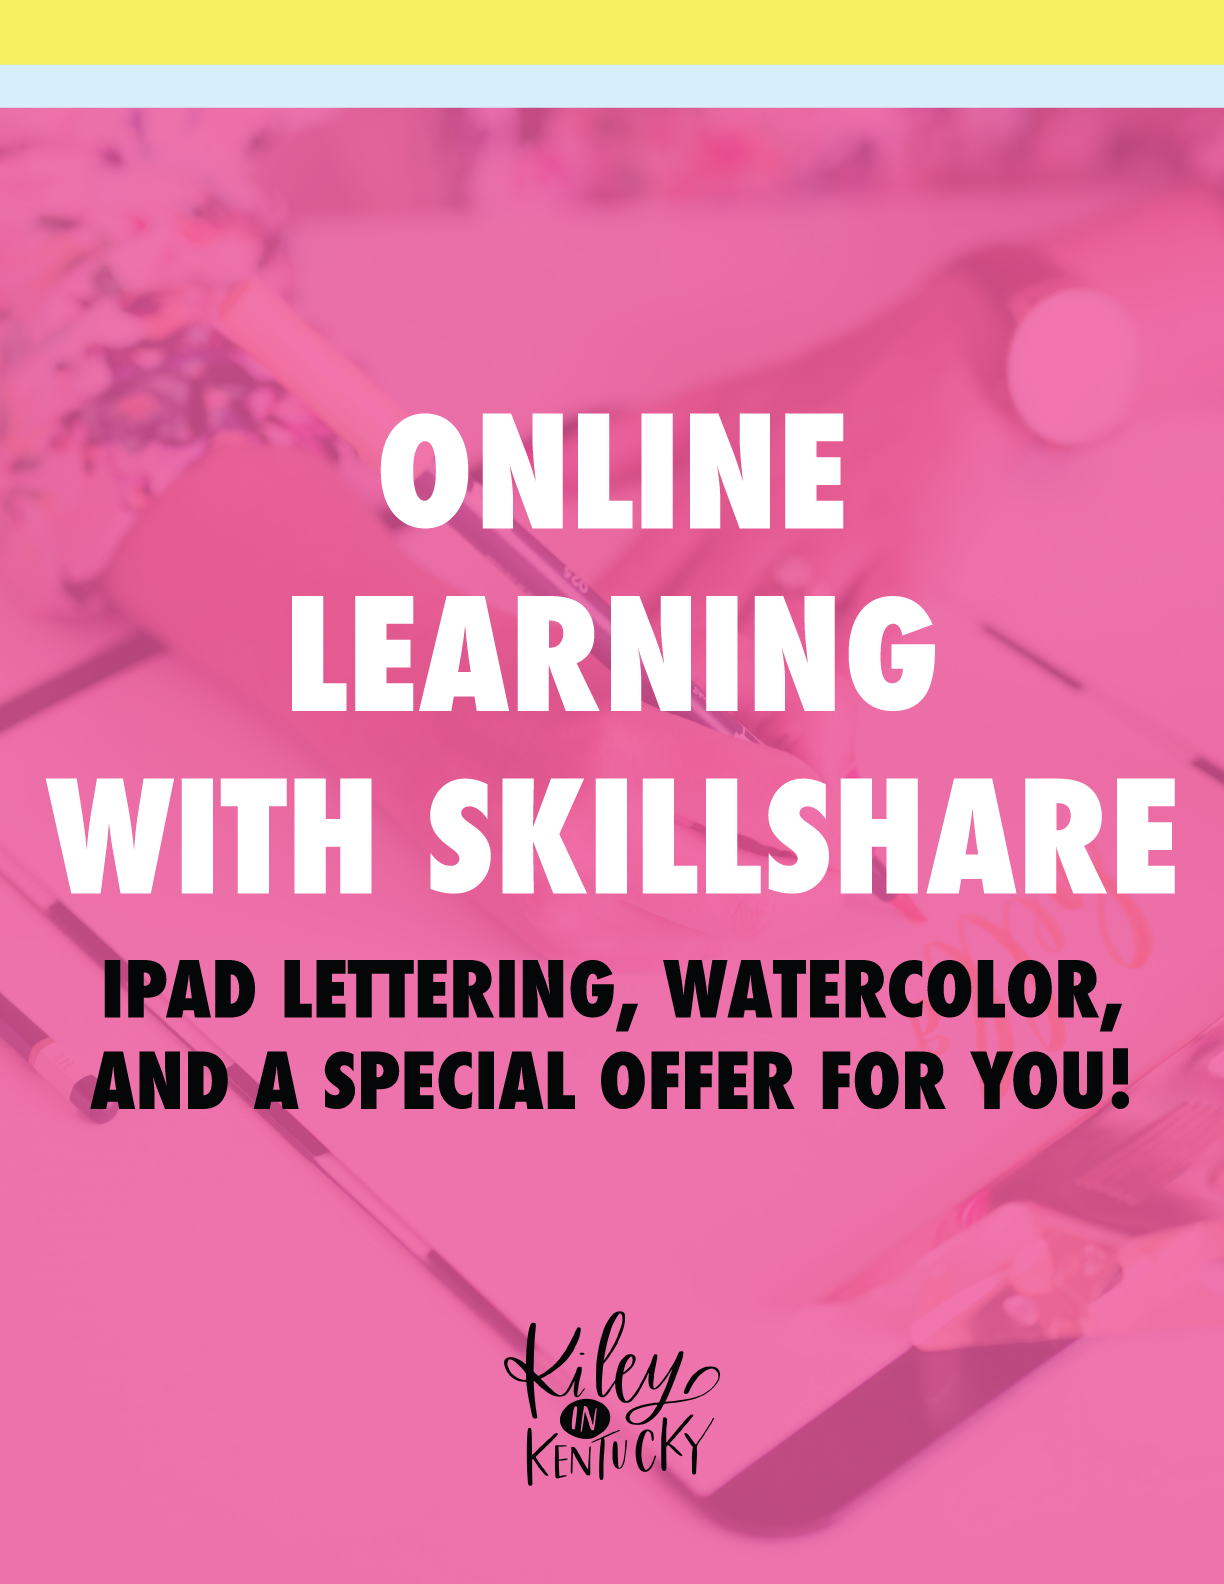 SKILLSHARE Learning Watercolor Ipad Lettering with Kiley in Kentucky